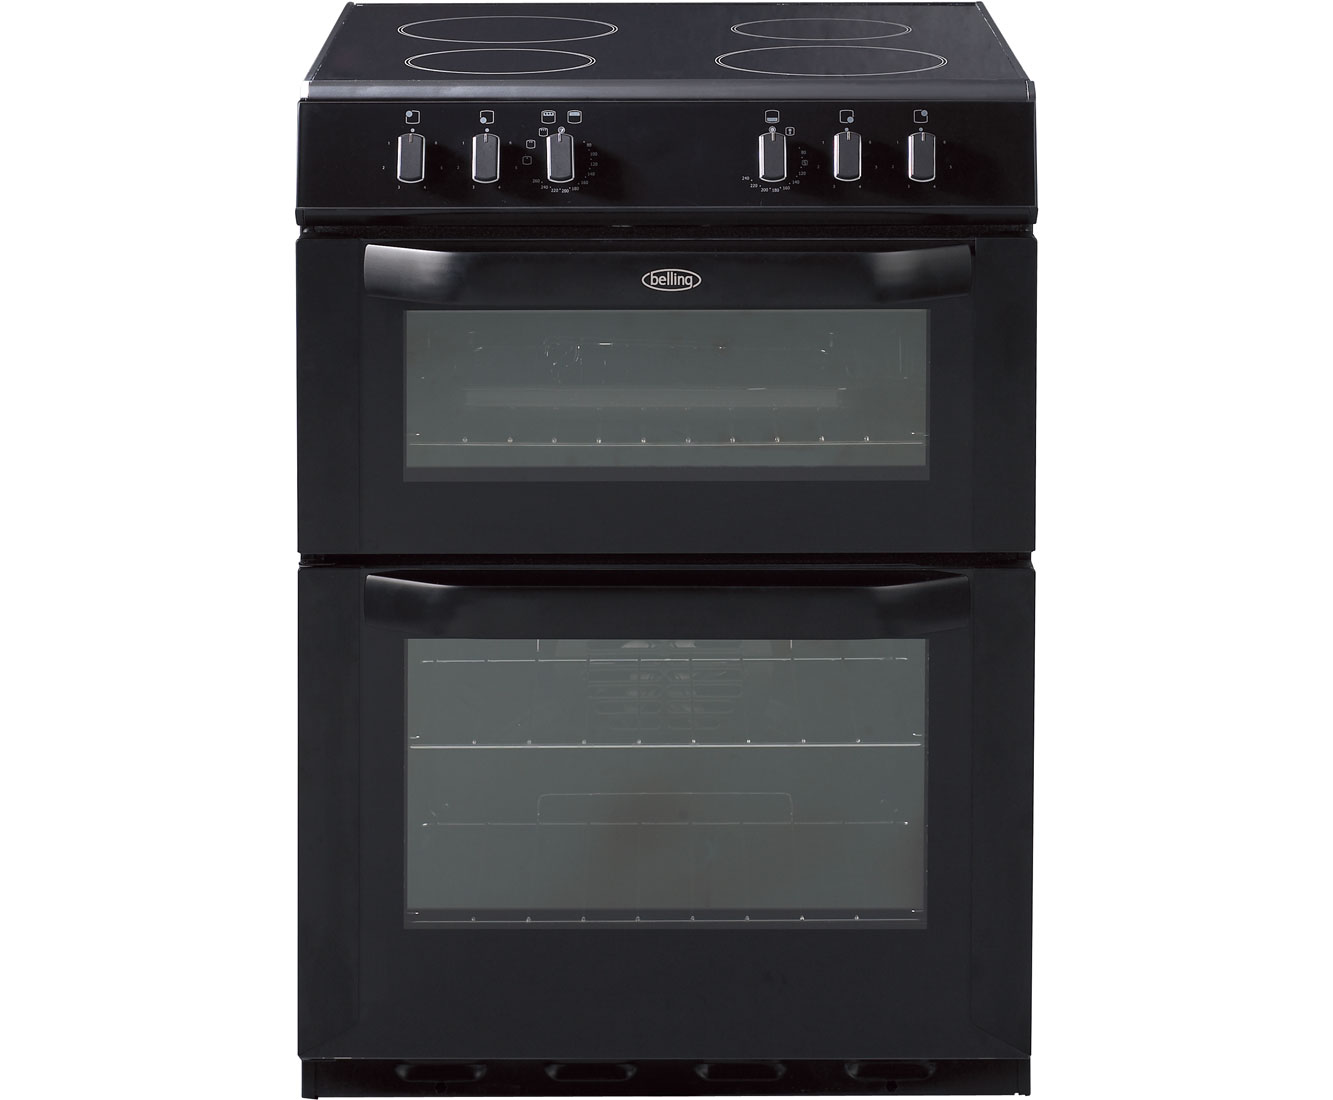 Belling FSE60DO Electric Cooker with Ceramic Hob - Black